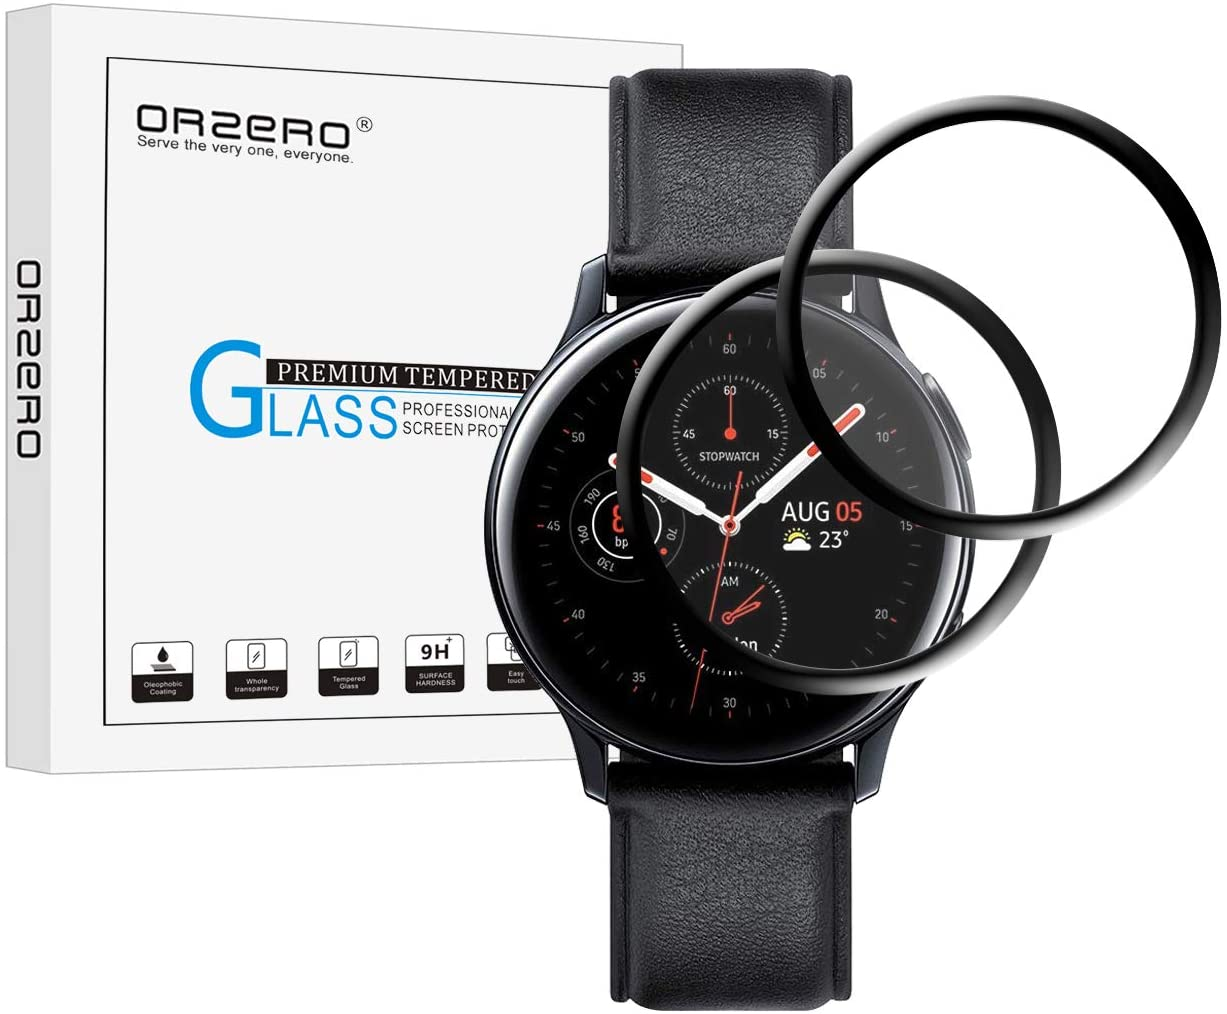 (2 Pack) Orzero Compatible for Samsung Galaxy Watch Active 2 (44mm) Screen Protector, 2.5D Arc Edges HD Anti-Scratch Bubble-Free (Lifetime Replacement)